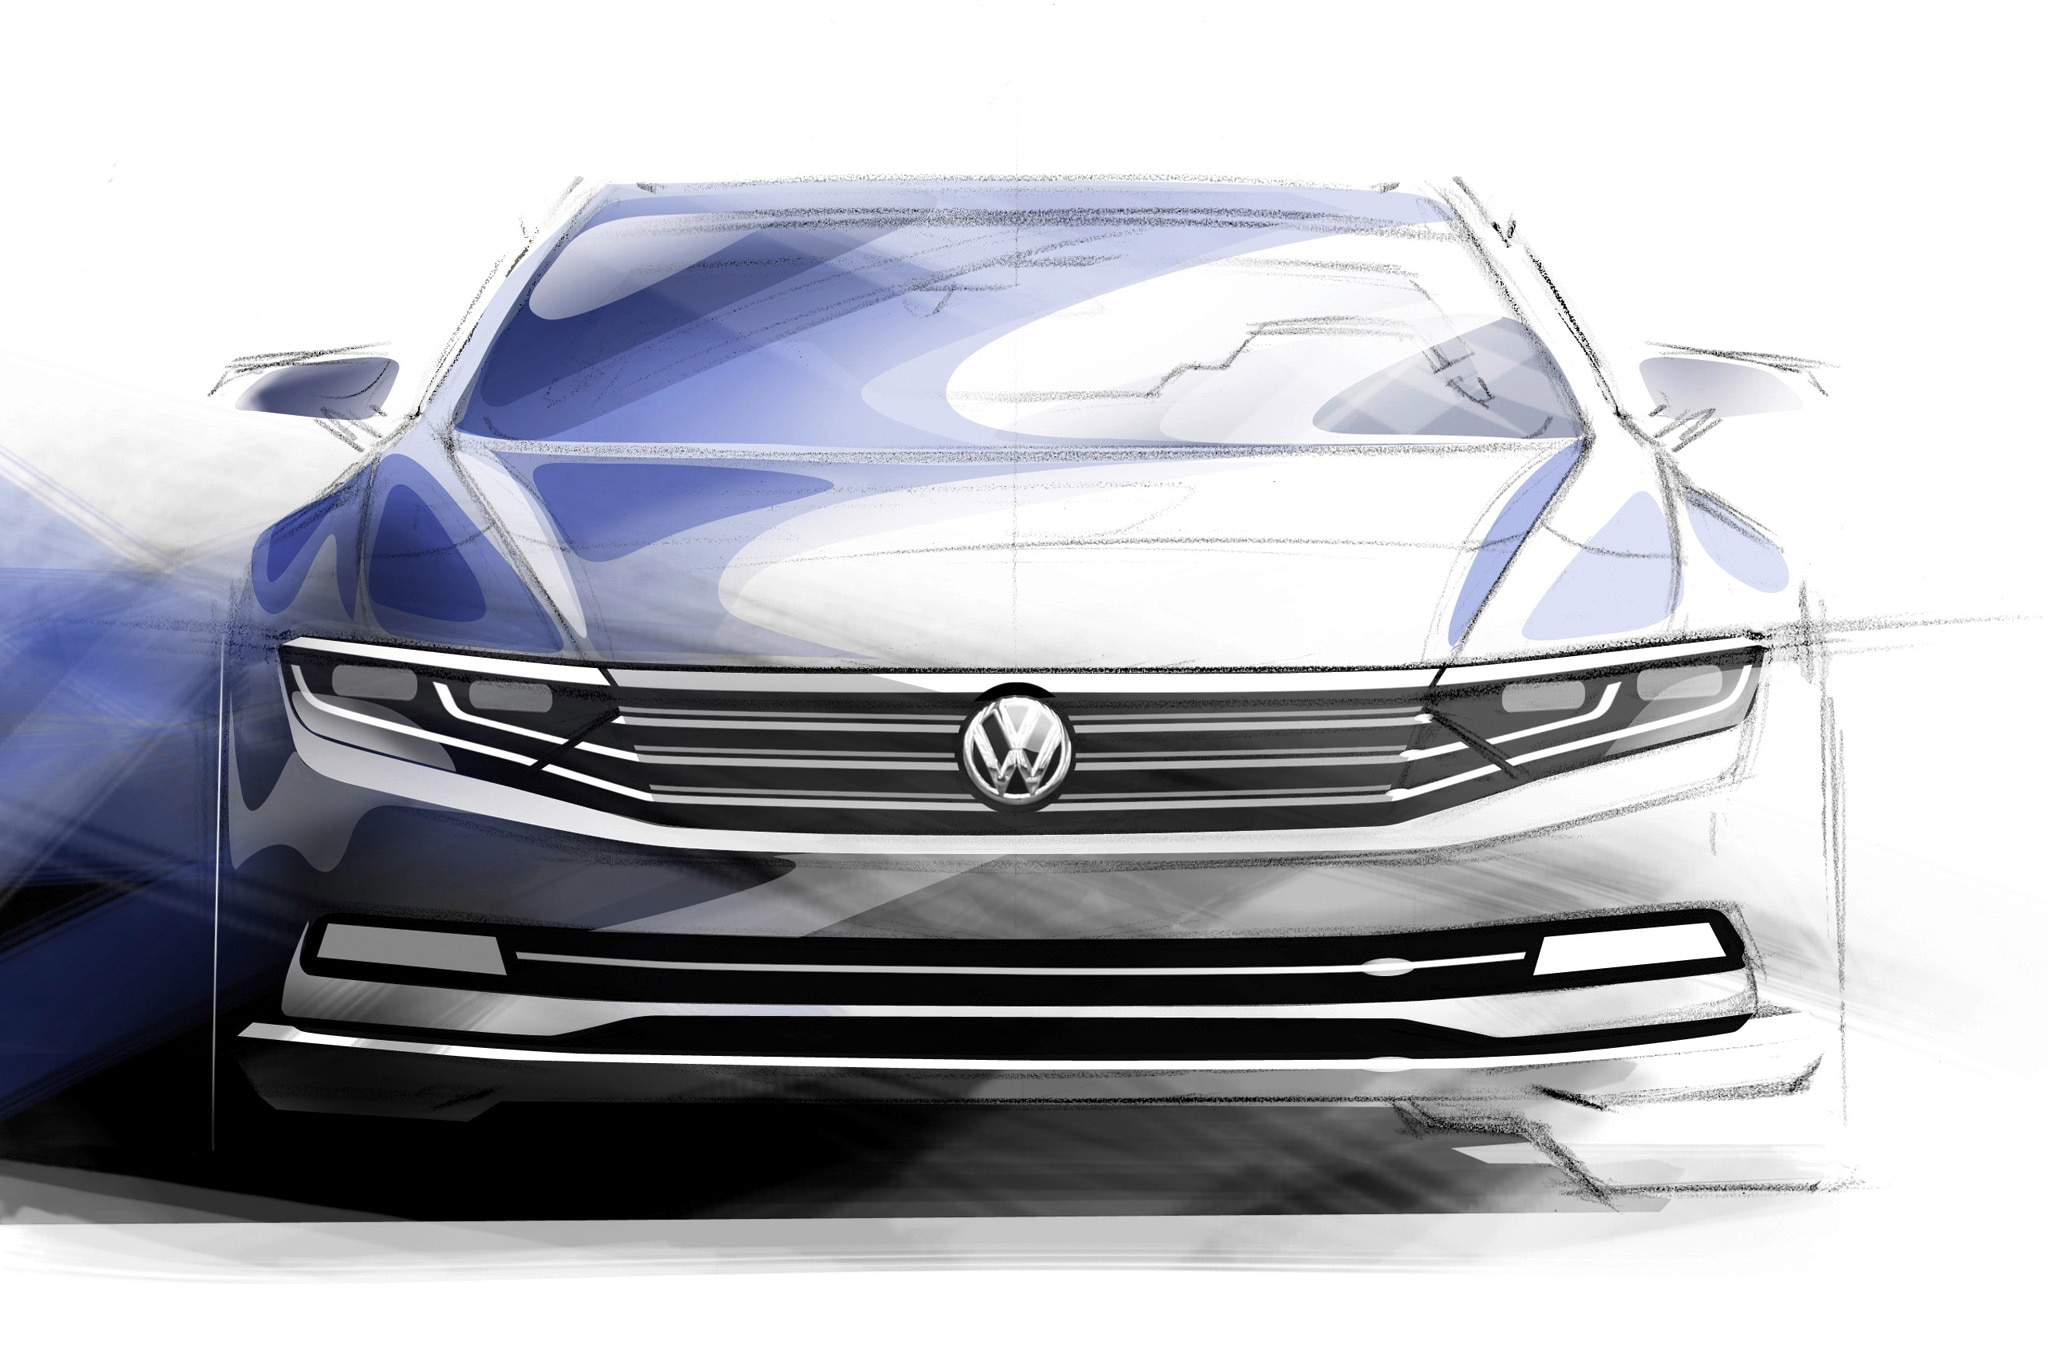 Volkswagen Passat Europe Tech Preview 01 Sketch Front1